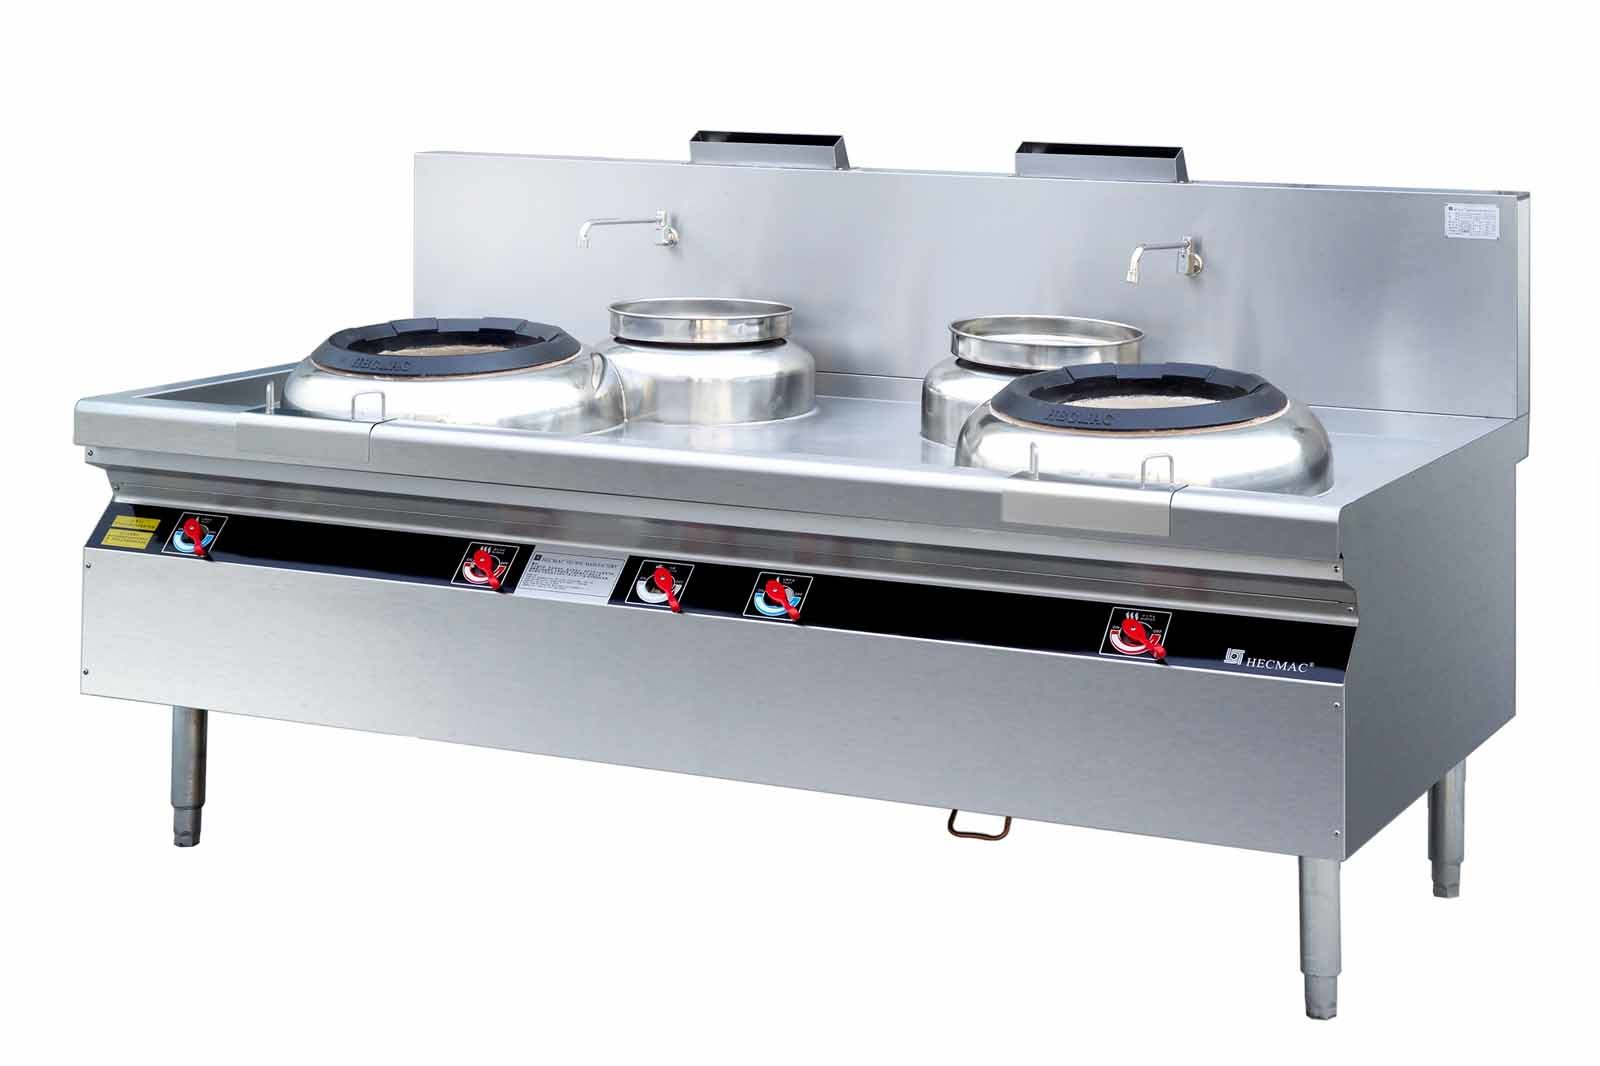 Commercial Gas Stove, Chinese Cooking Range with Blower---Double ...